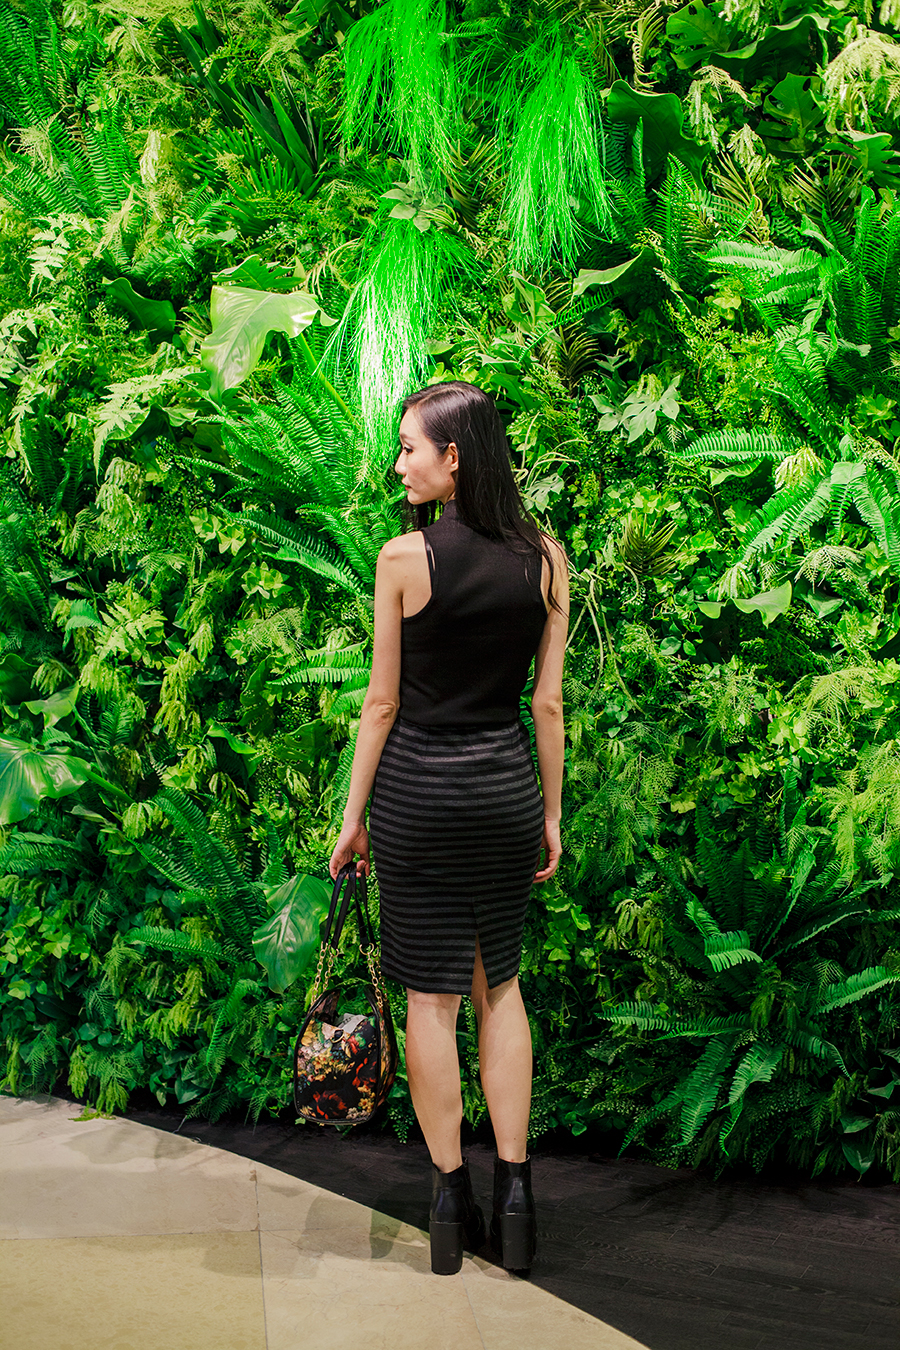 Inglot x Zalora makeover outfit: Topshop high collar ribbed top, Uniqlo striped pencil skirt, Dressin floral bowling bag, Rubi black platform booties.